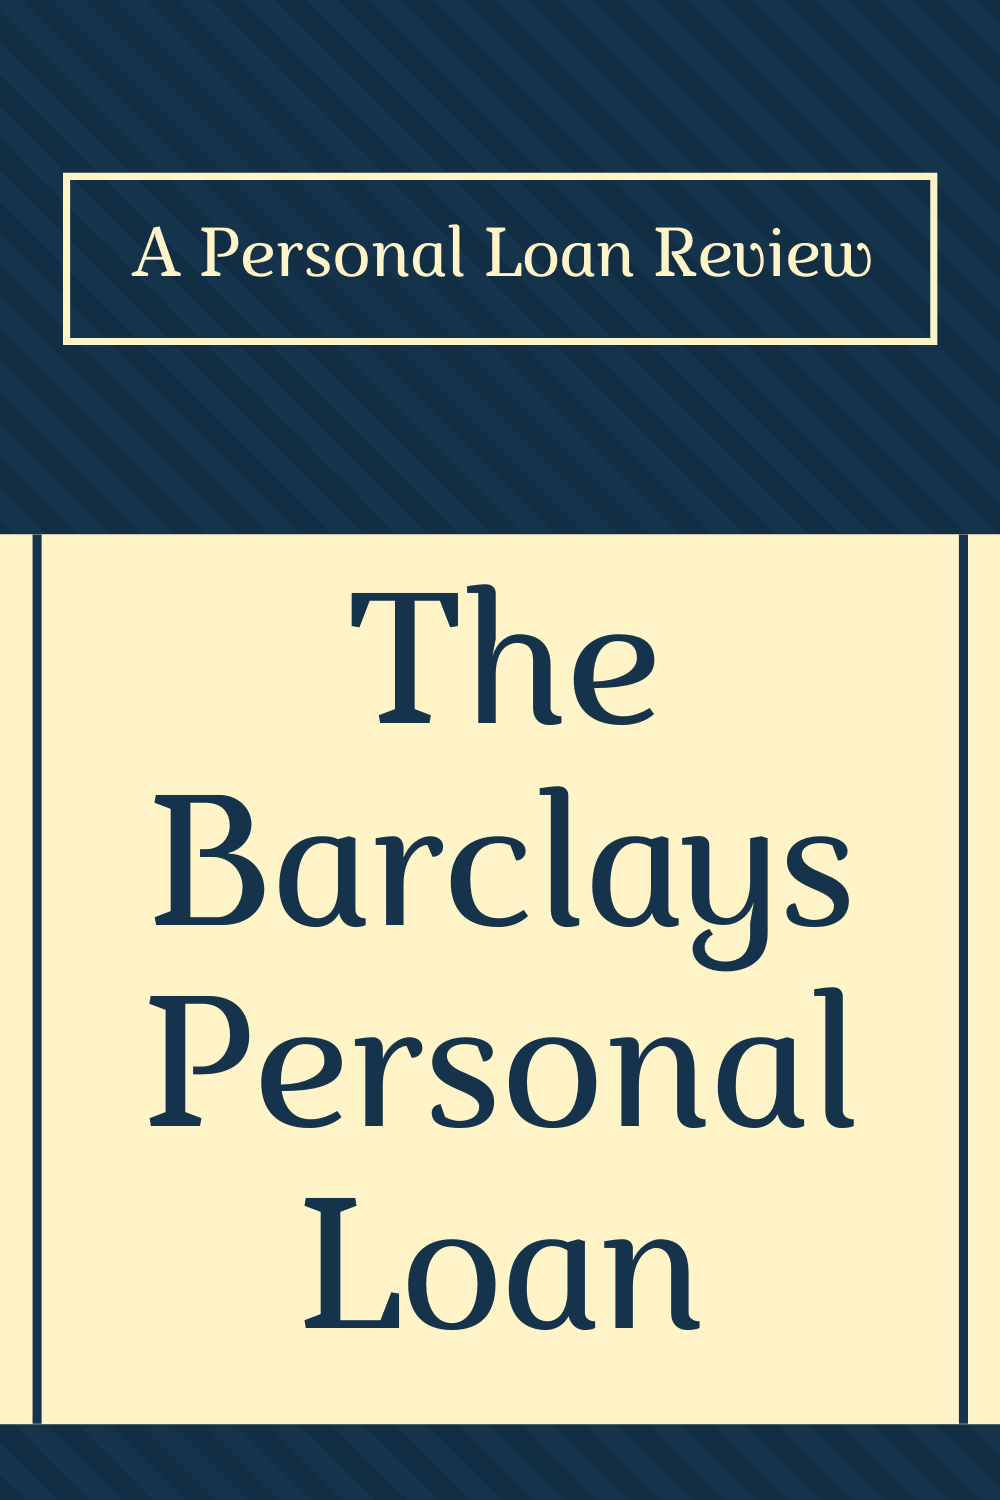 Barclays Personal Loan Review In 2020 Personal Loans Personal Loans Debt Payoff Person